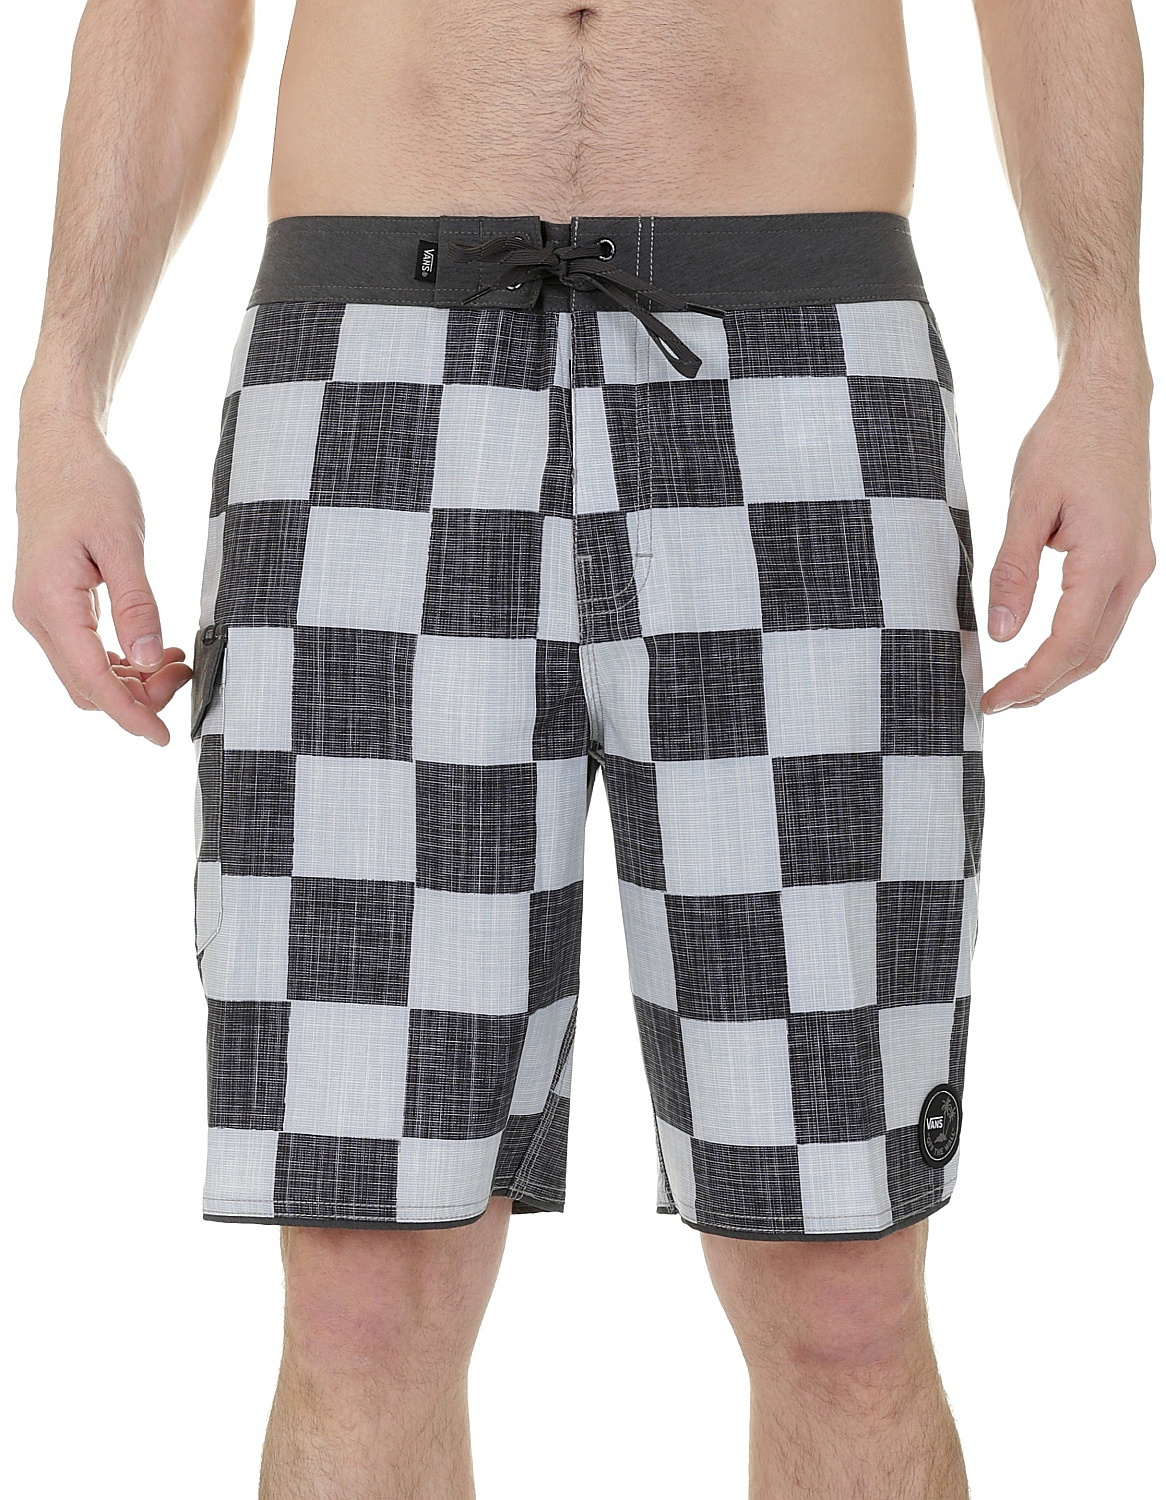 3a6c9663e6 swim shorts Vans Mixed Scallop - Checkerboard - Snowboard shop ...